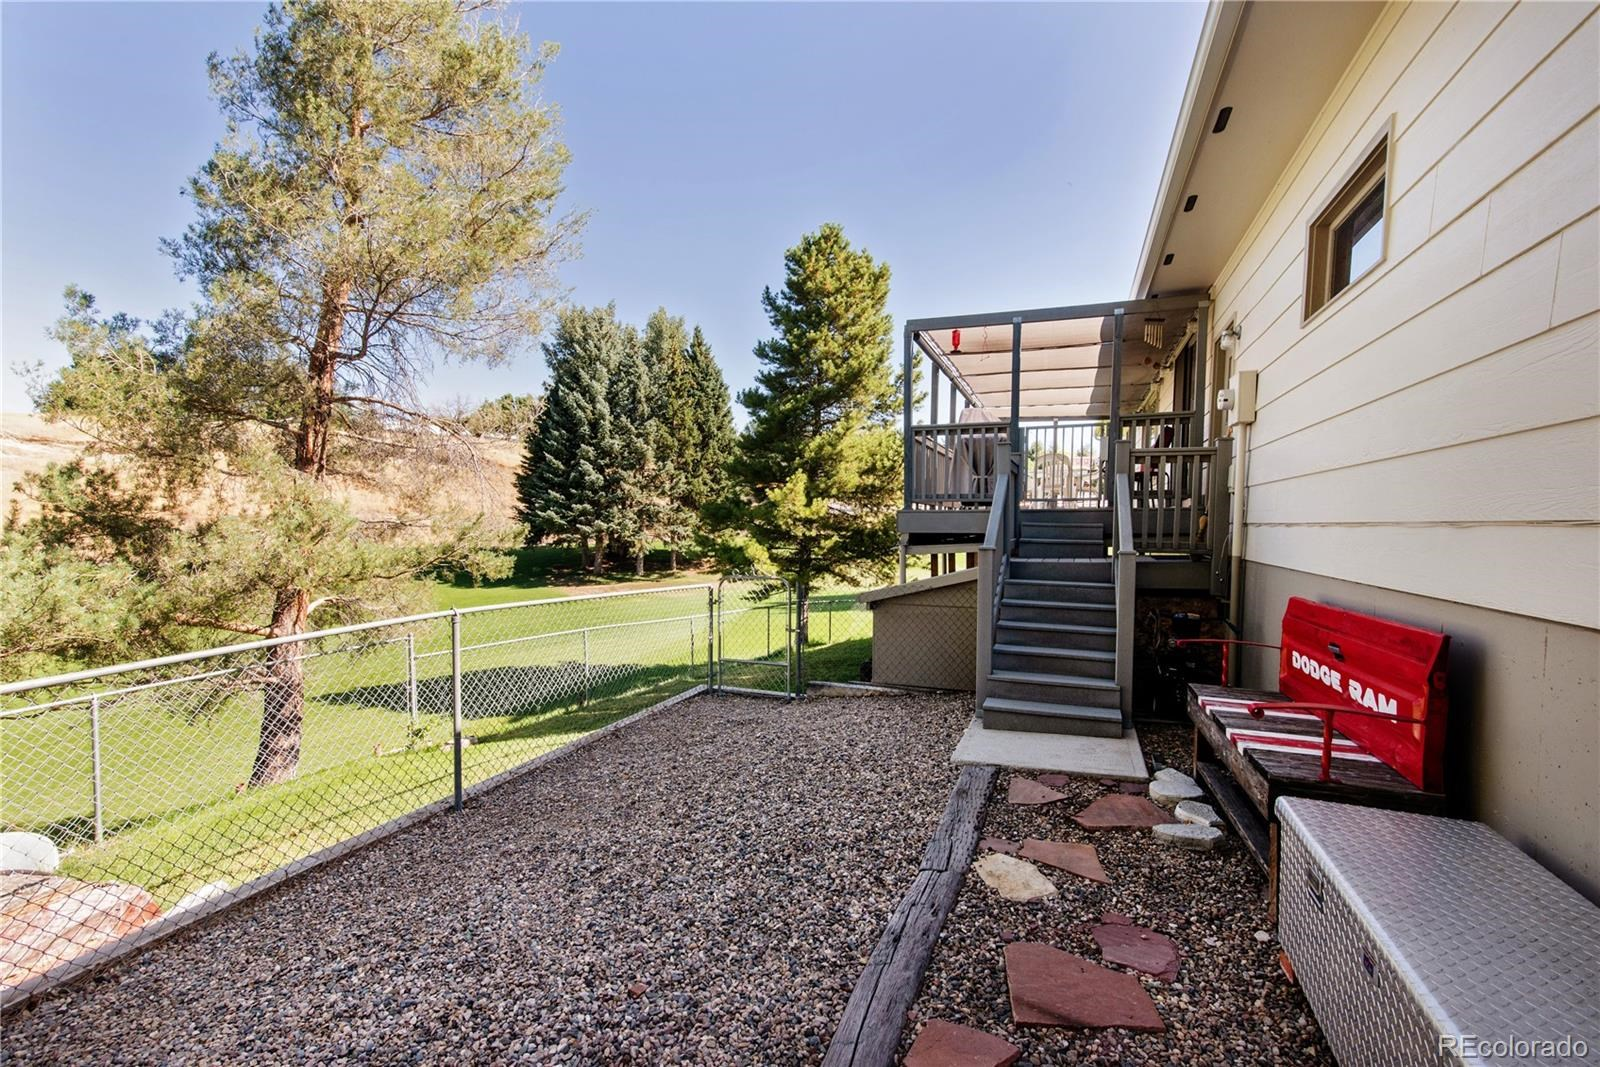 MLS# 6784313 - 970 Sloan Circle, Craig, CO 81625